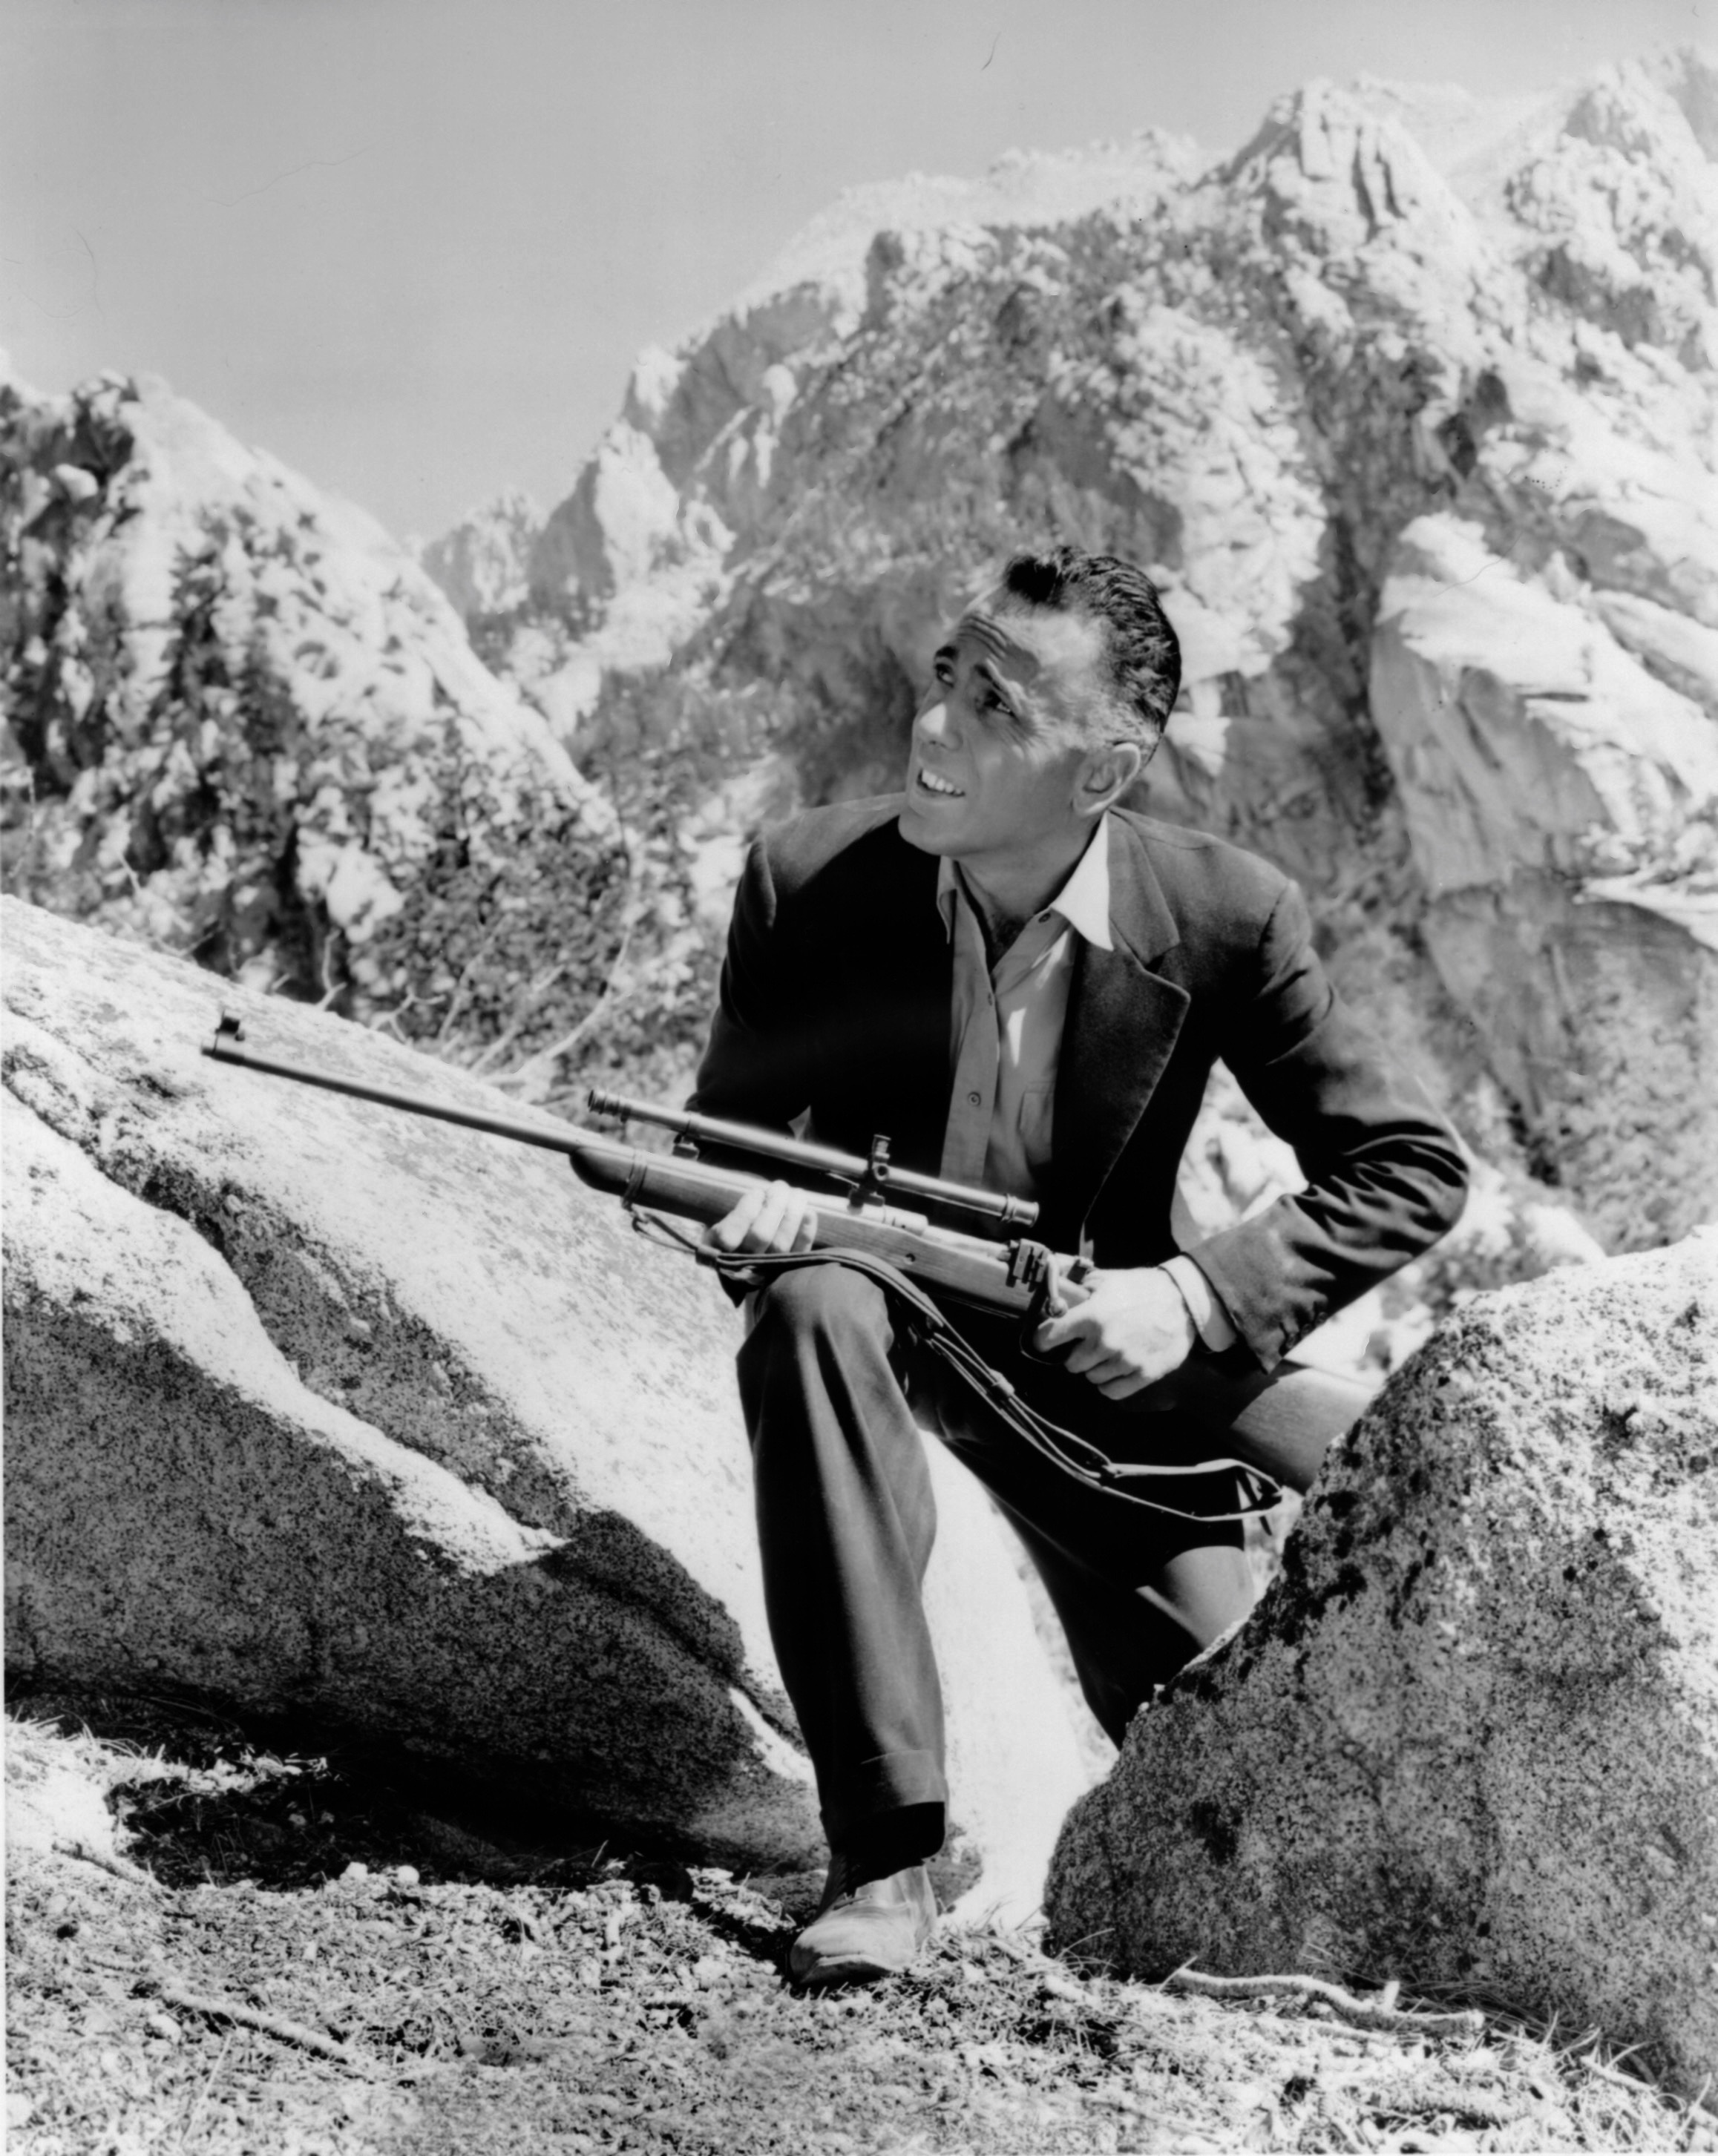 Stuntman Buster Wiles played both the sniper and the doomed Earle leading him to remarked he actually shot himself.